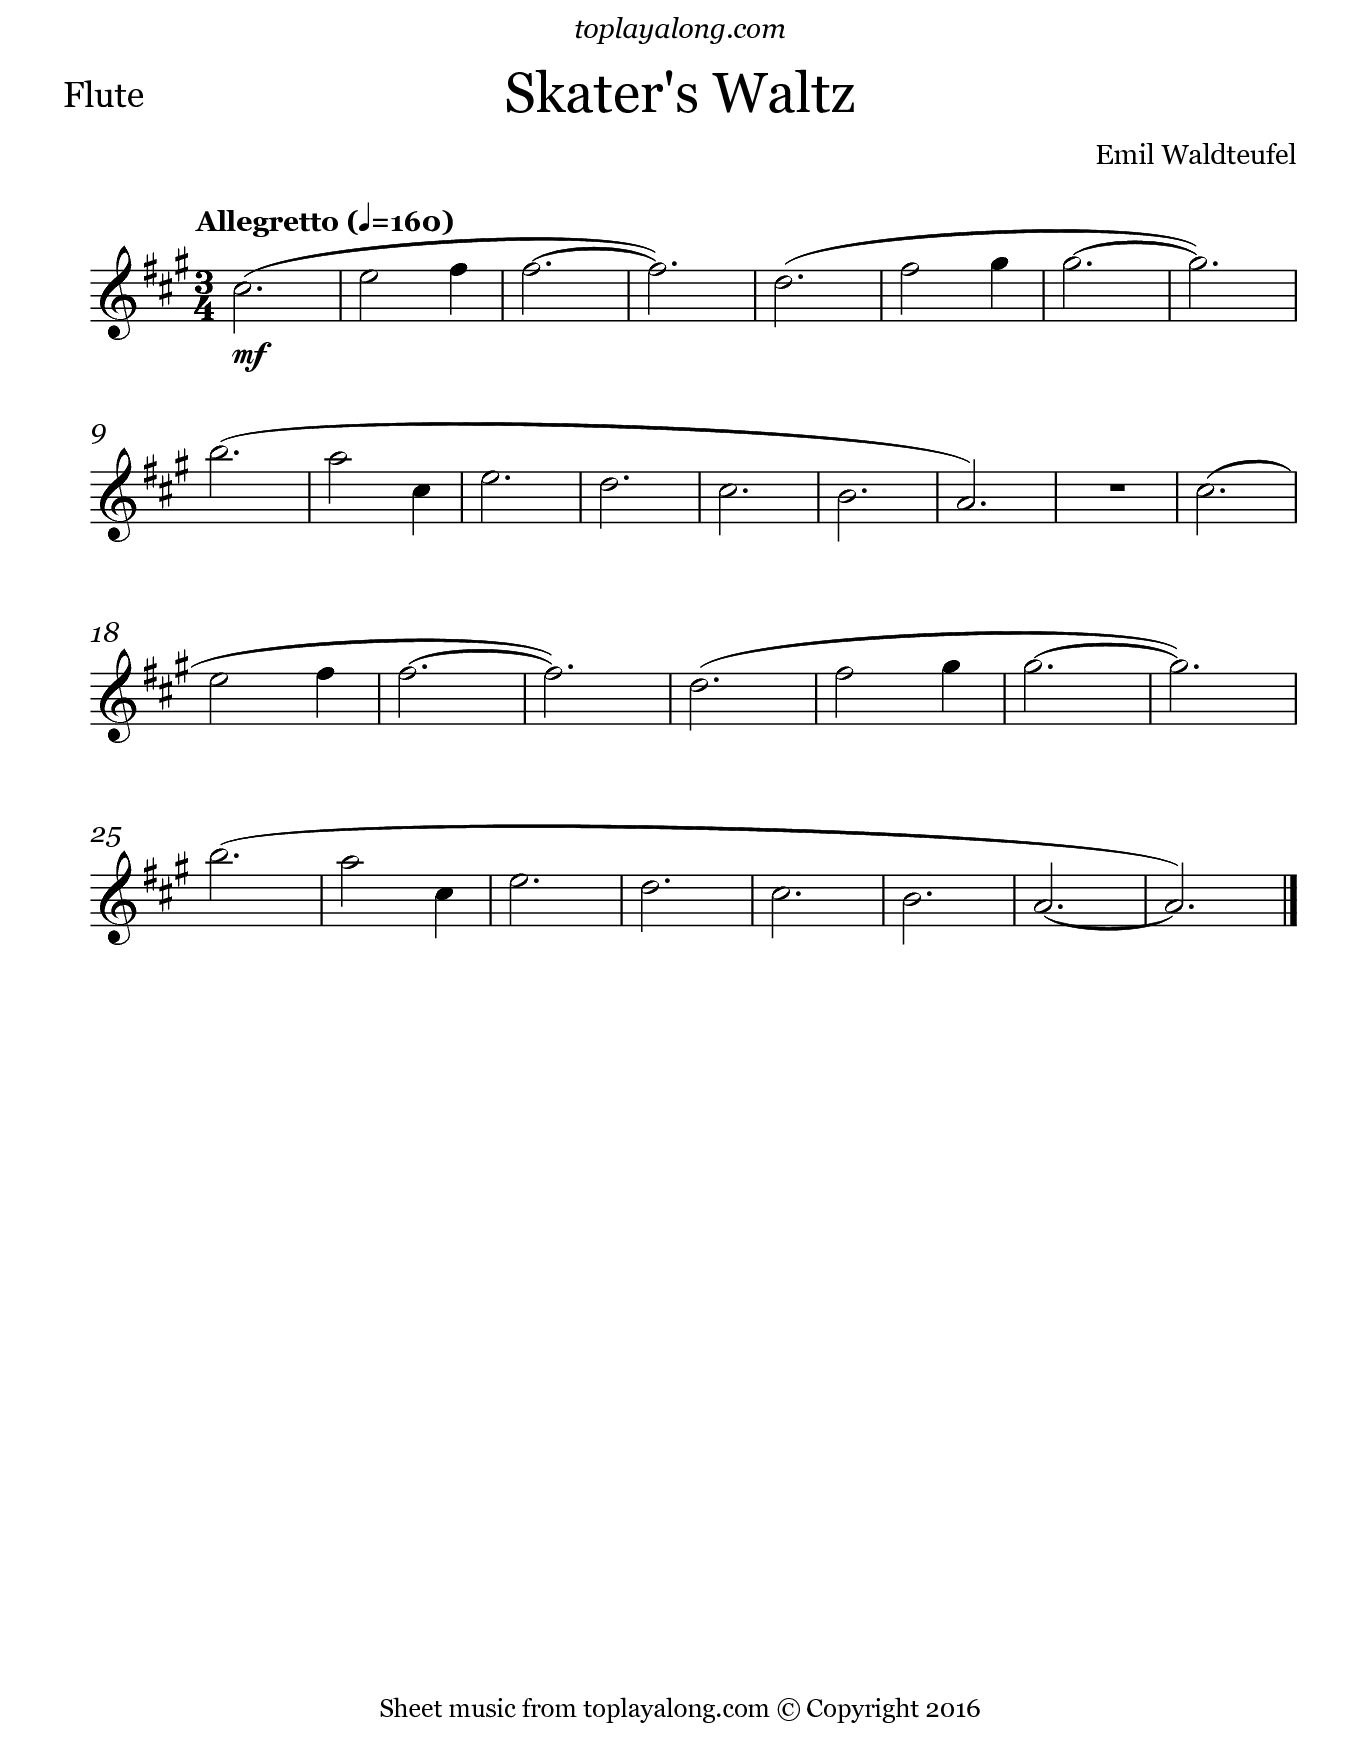 Skater's Waltz by Waldteufel. Sheet music for Flute, page 1.